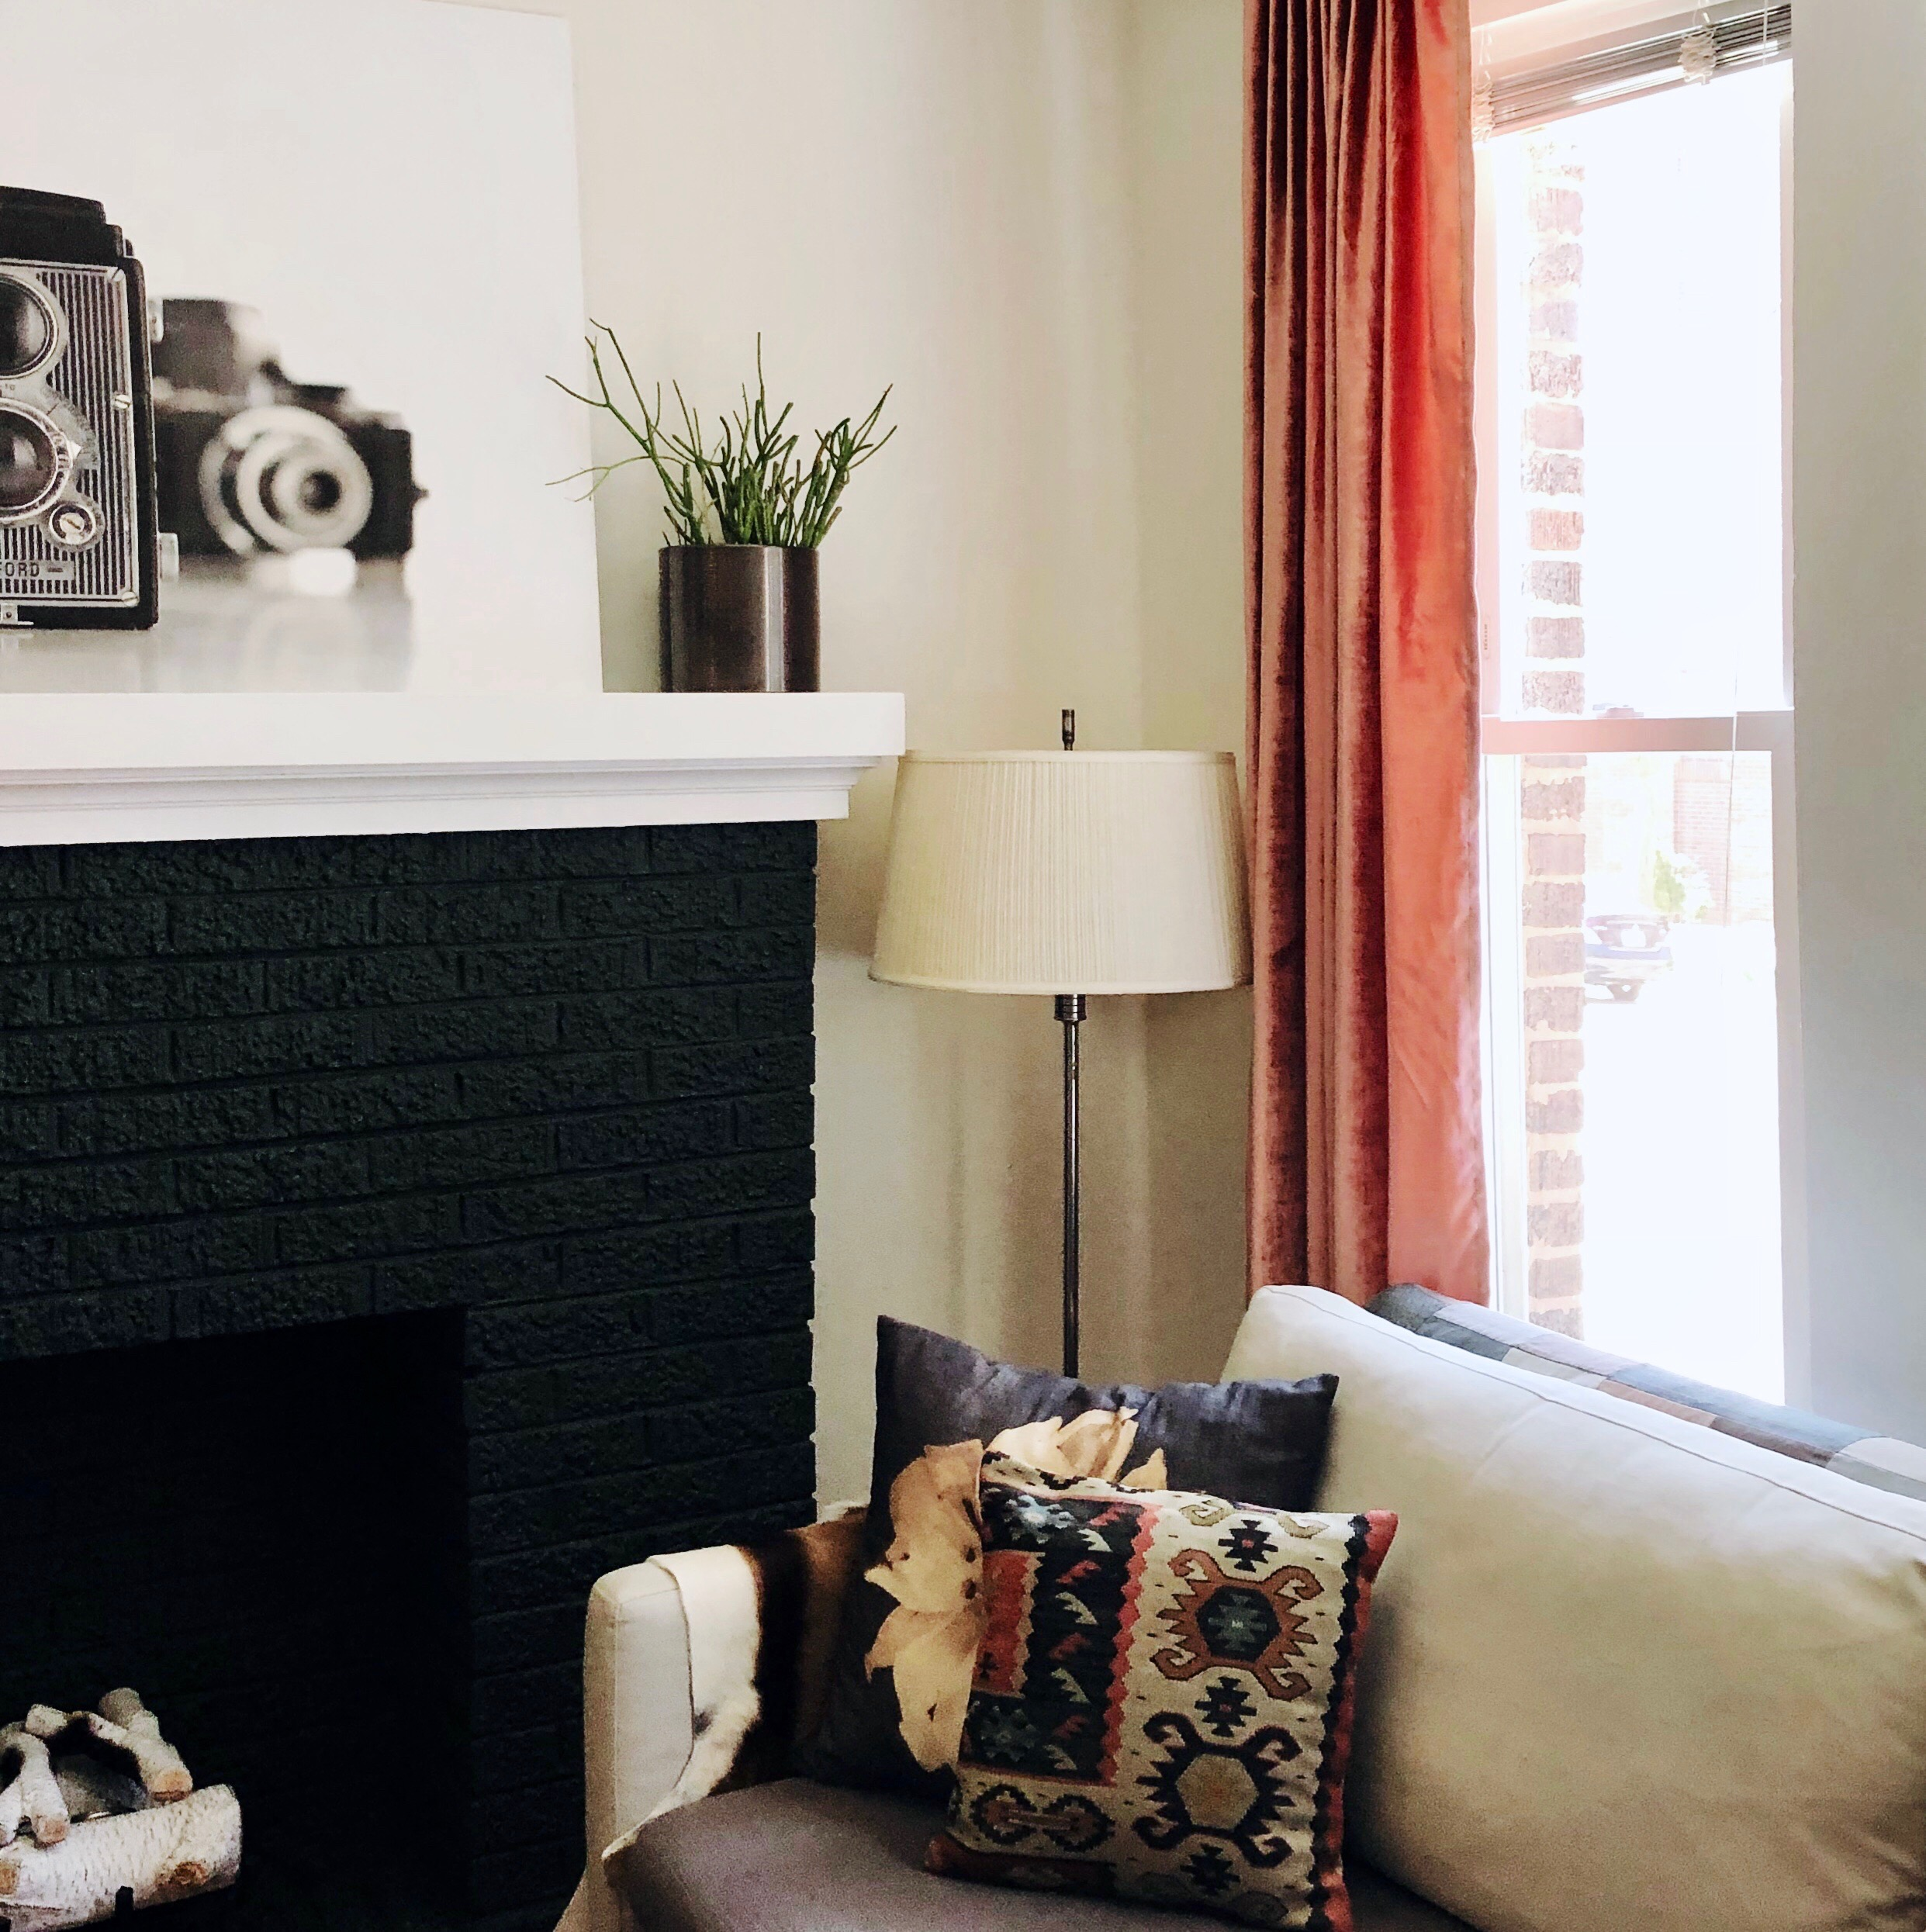 painted fireplace and sofa in living room